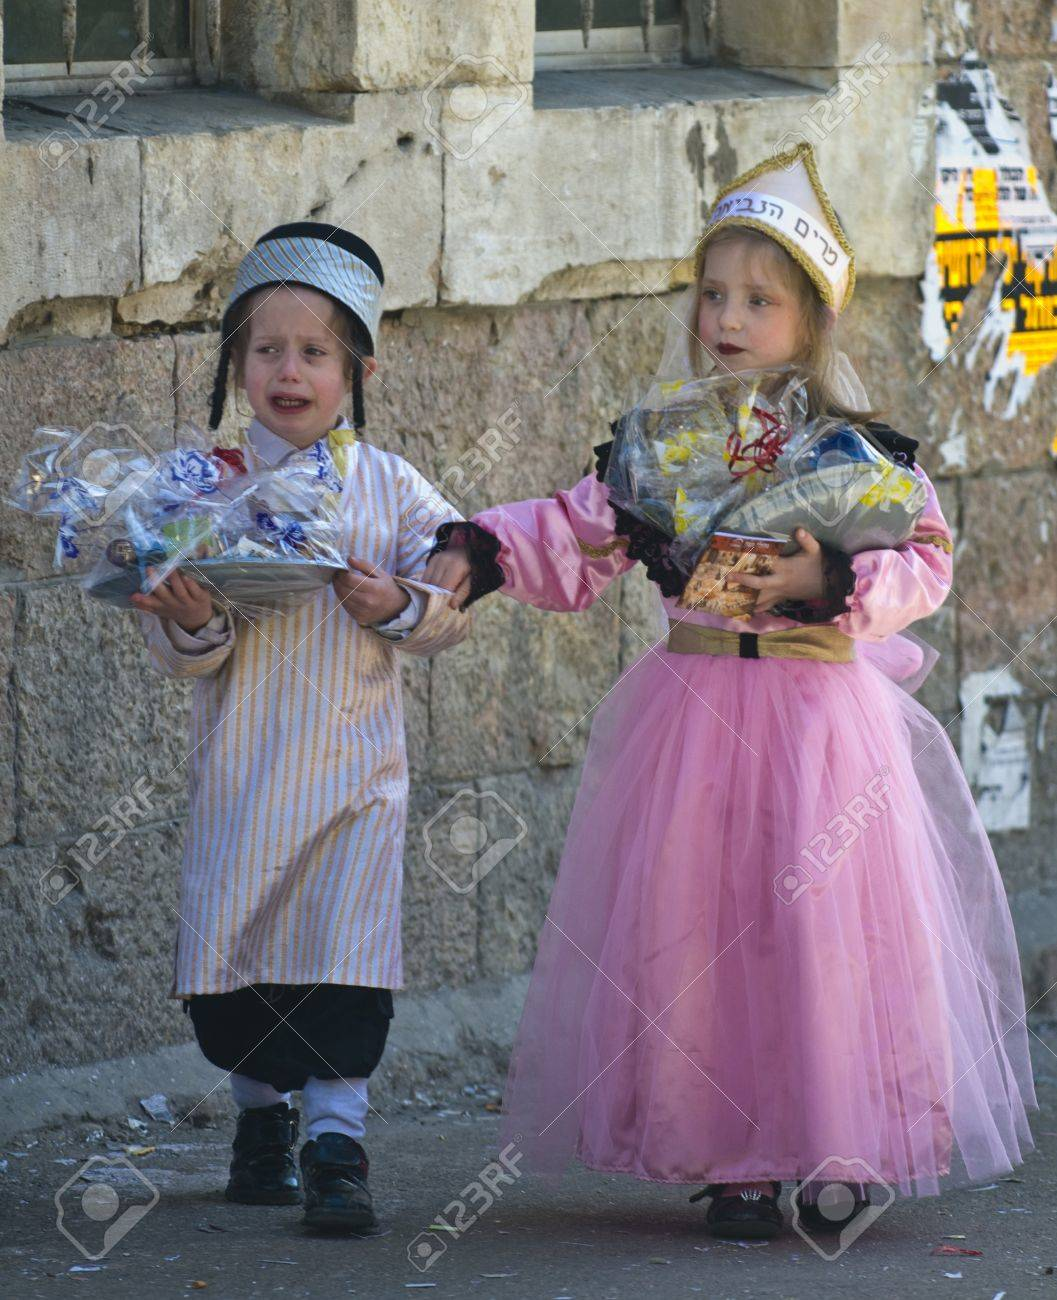 JERUSALEM - MARS 09 : Ultra Orthodox children holding Mishloach Manot during Purim in Mea Shearim Jerusalem on Mars 09 2012 , Mishloach Manot is traditional food gifts given during Purim Stock Photo - 12618649